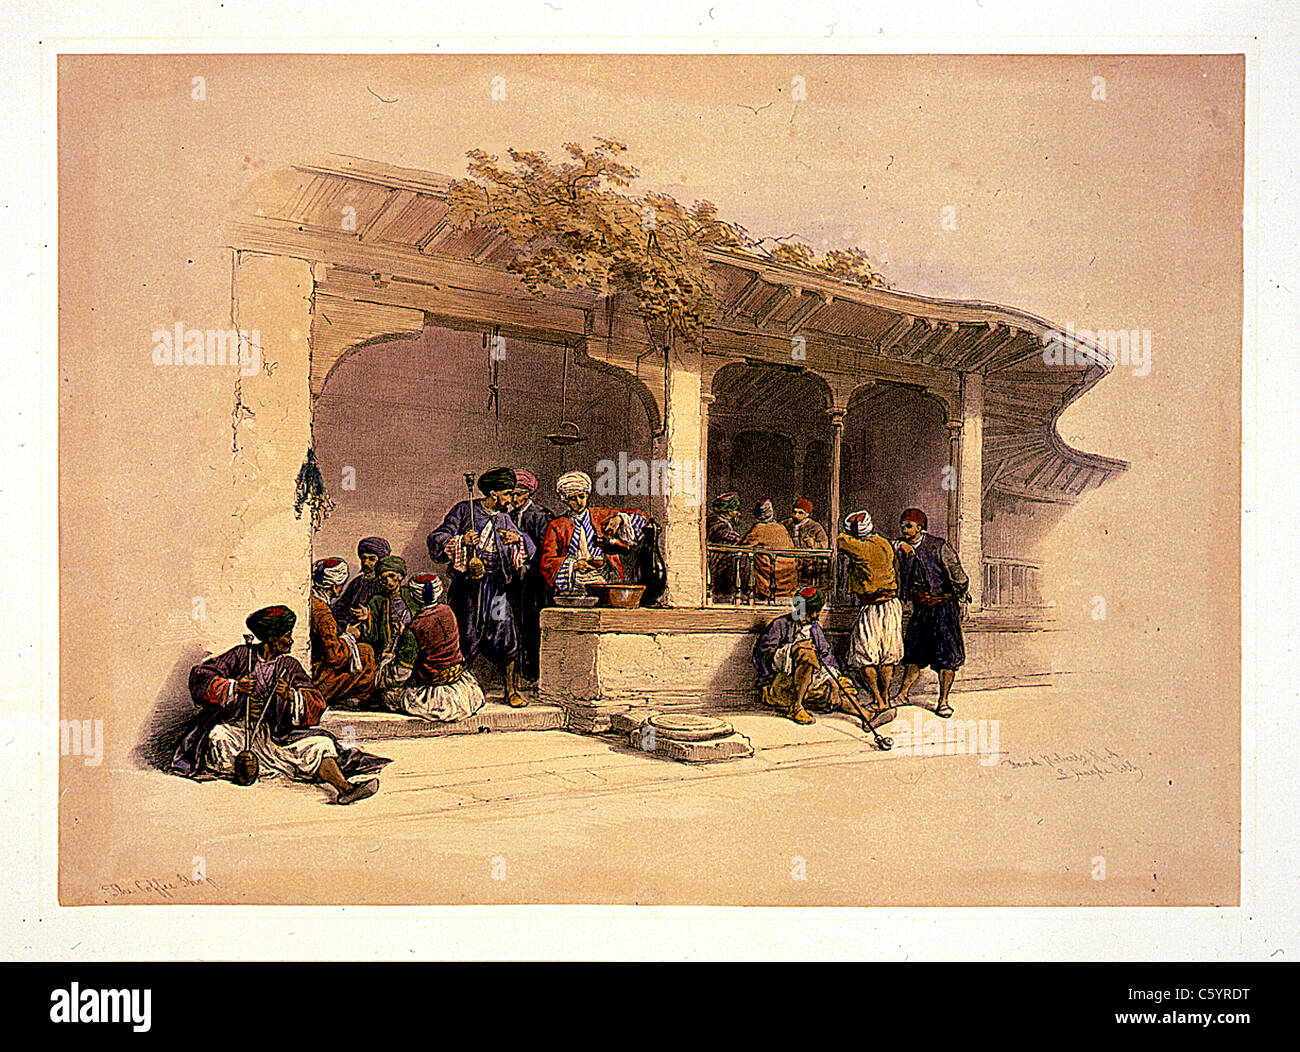 roberts coffee stock photos roberts coffee stock images alamy the coffee shop cairo david roberts and louis haghe lithograph stock image